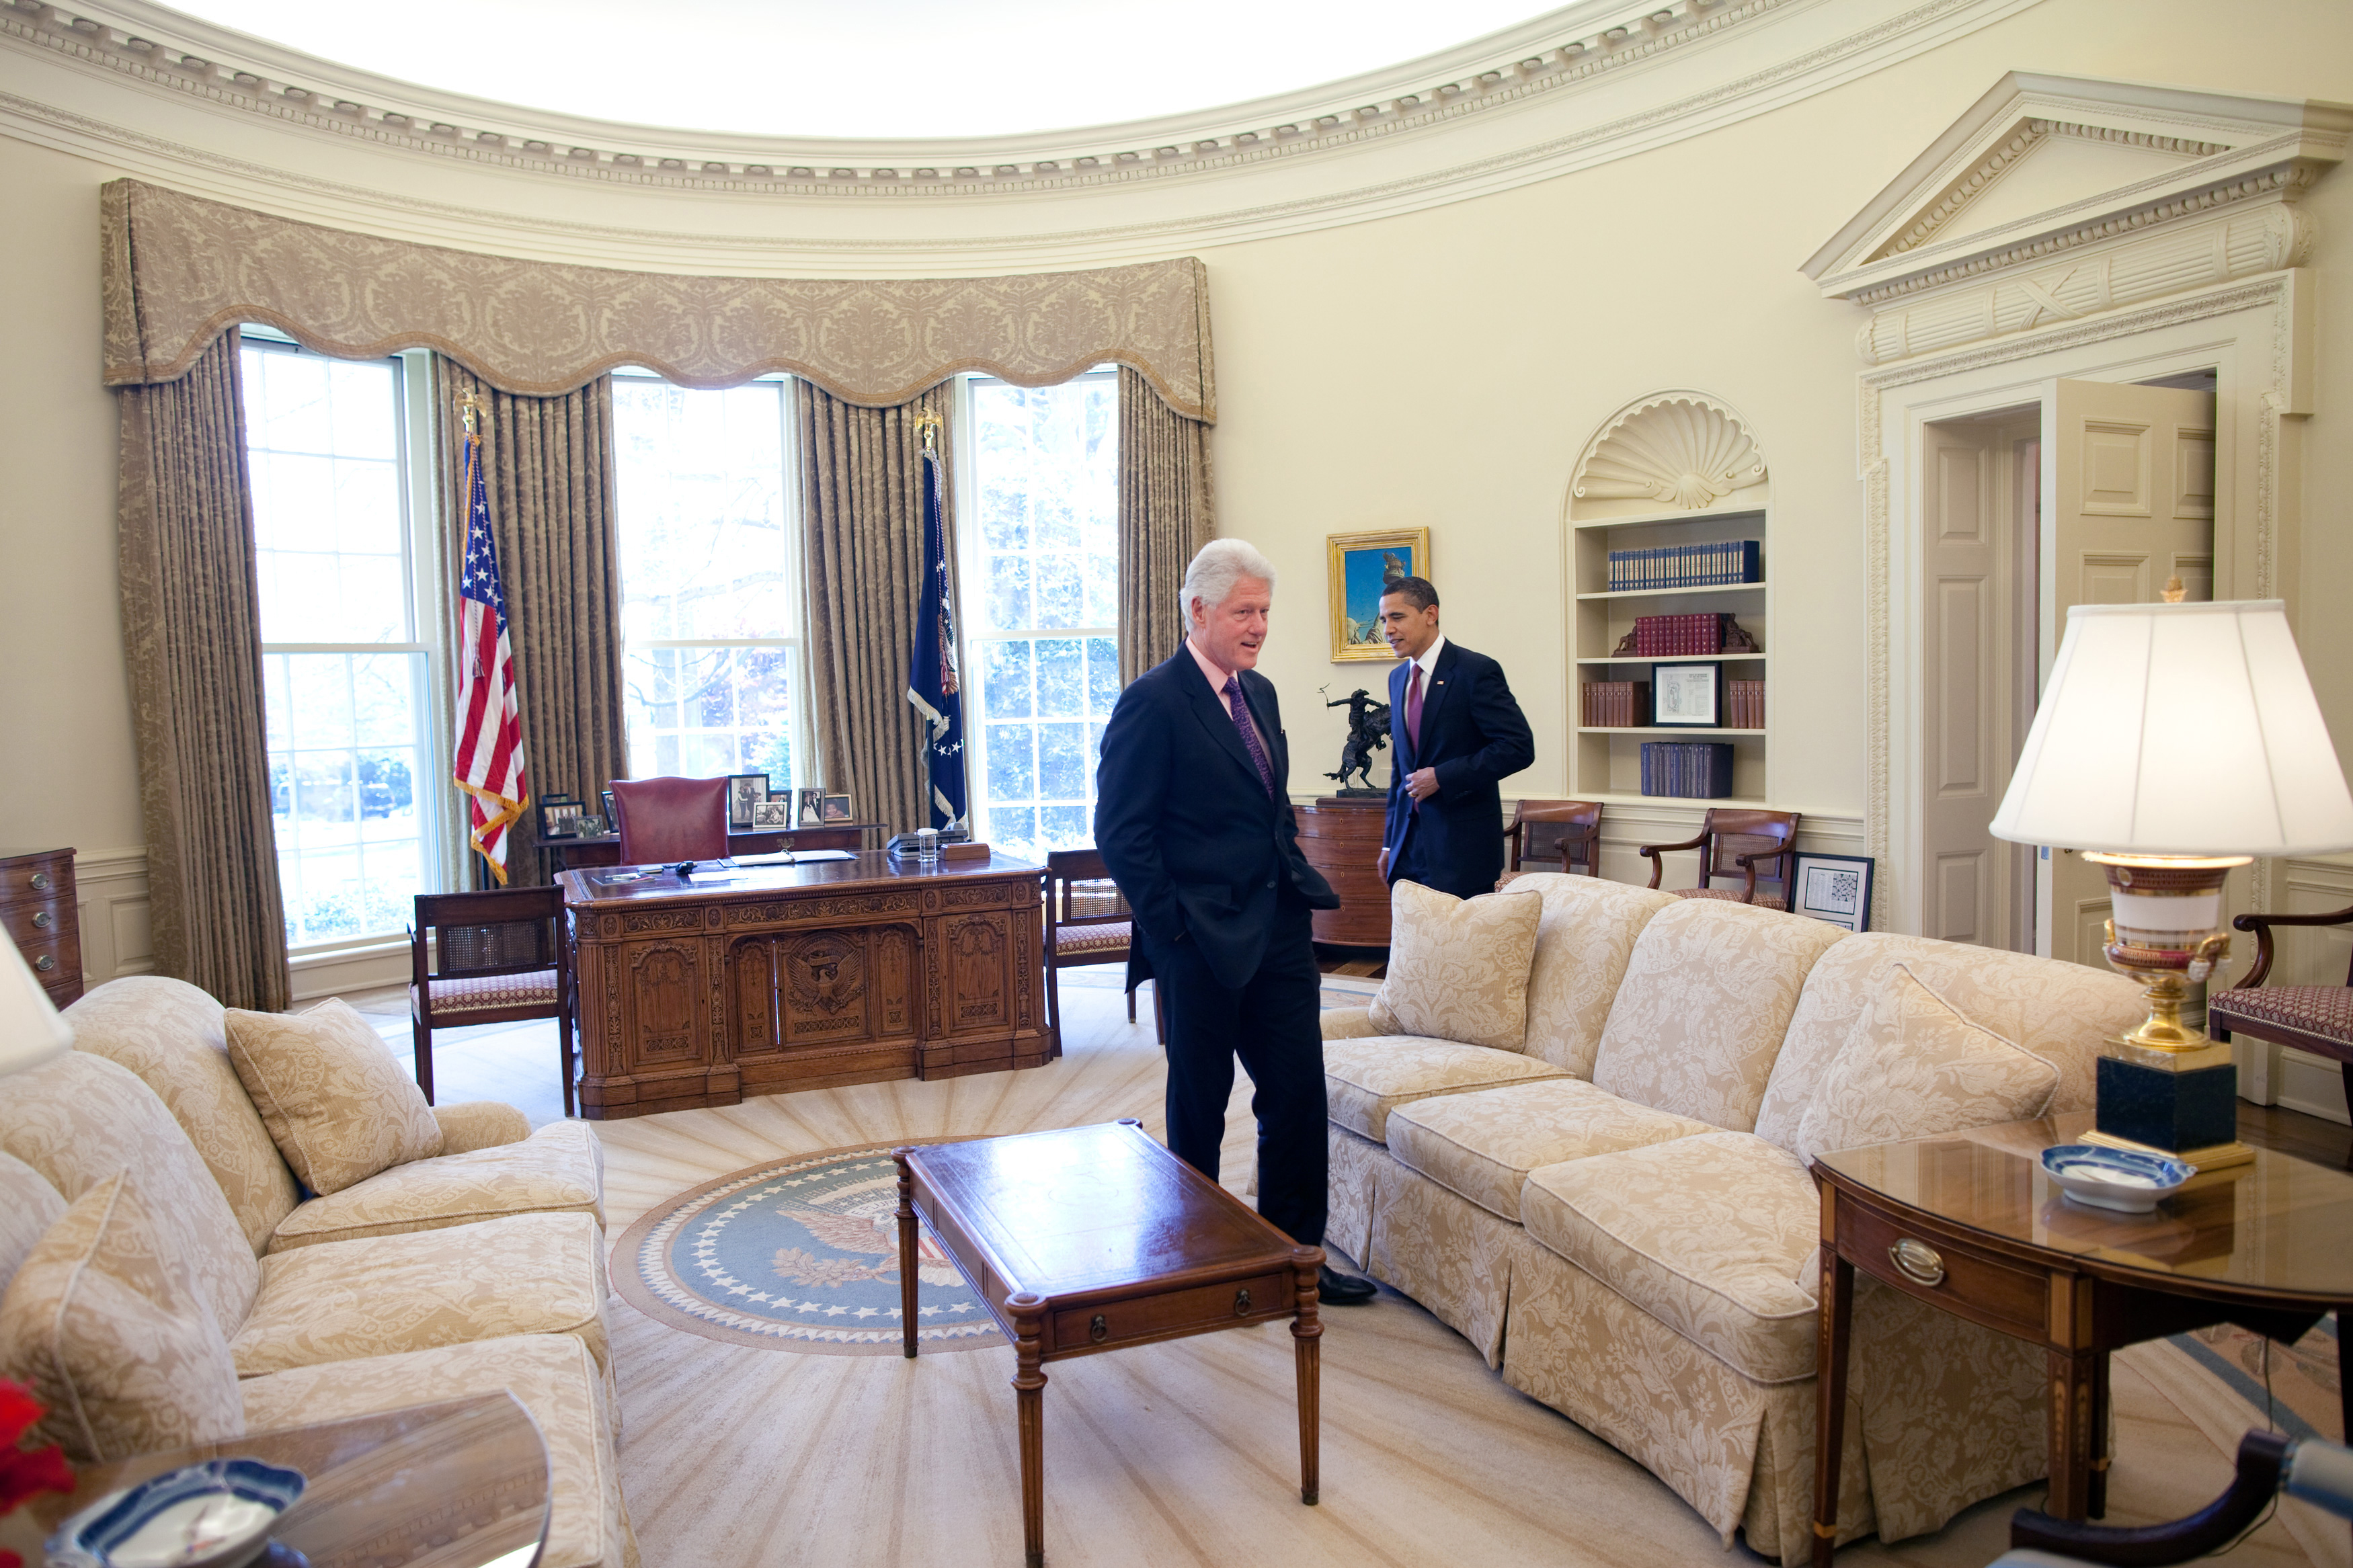 Studio Ovale Obama : File barack obama and bill clinton in the oval office g